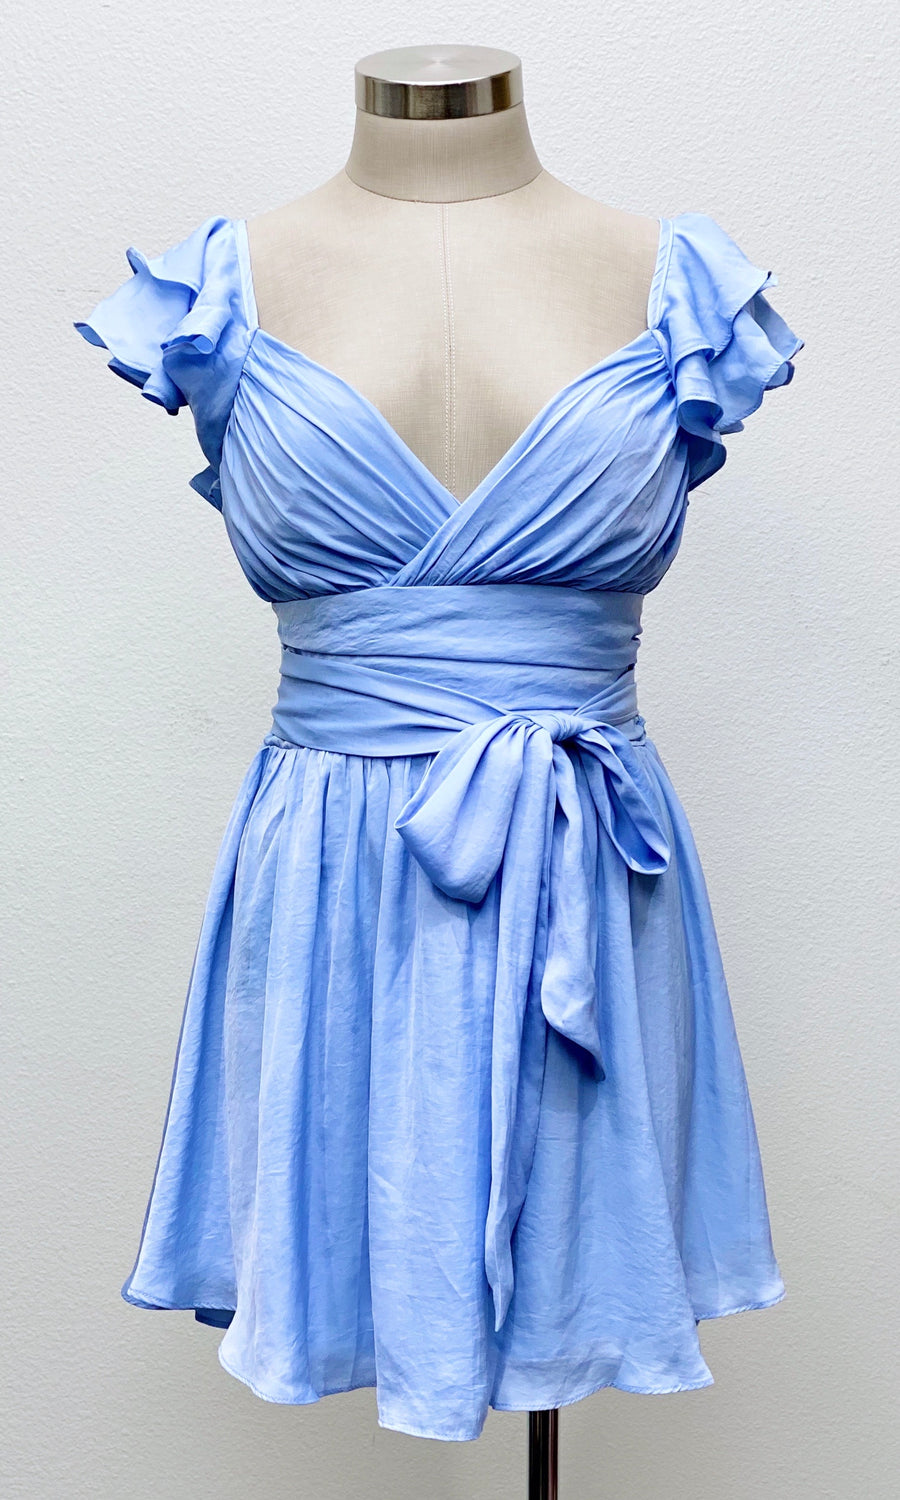 Fly Me to the Moon Dress